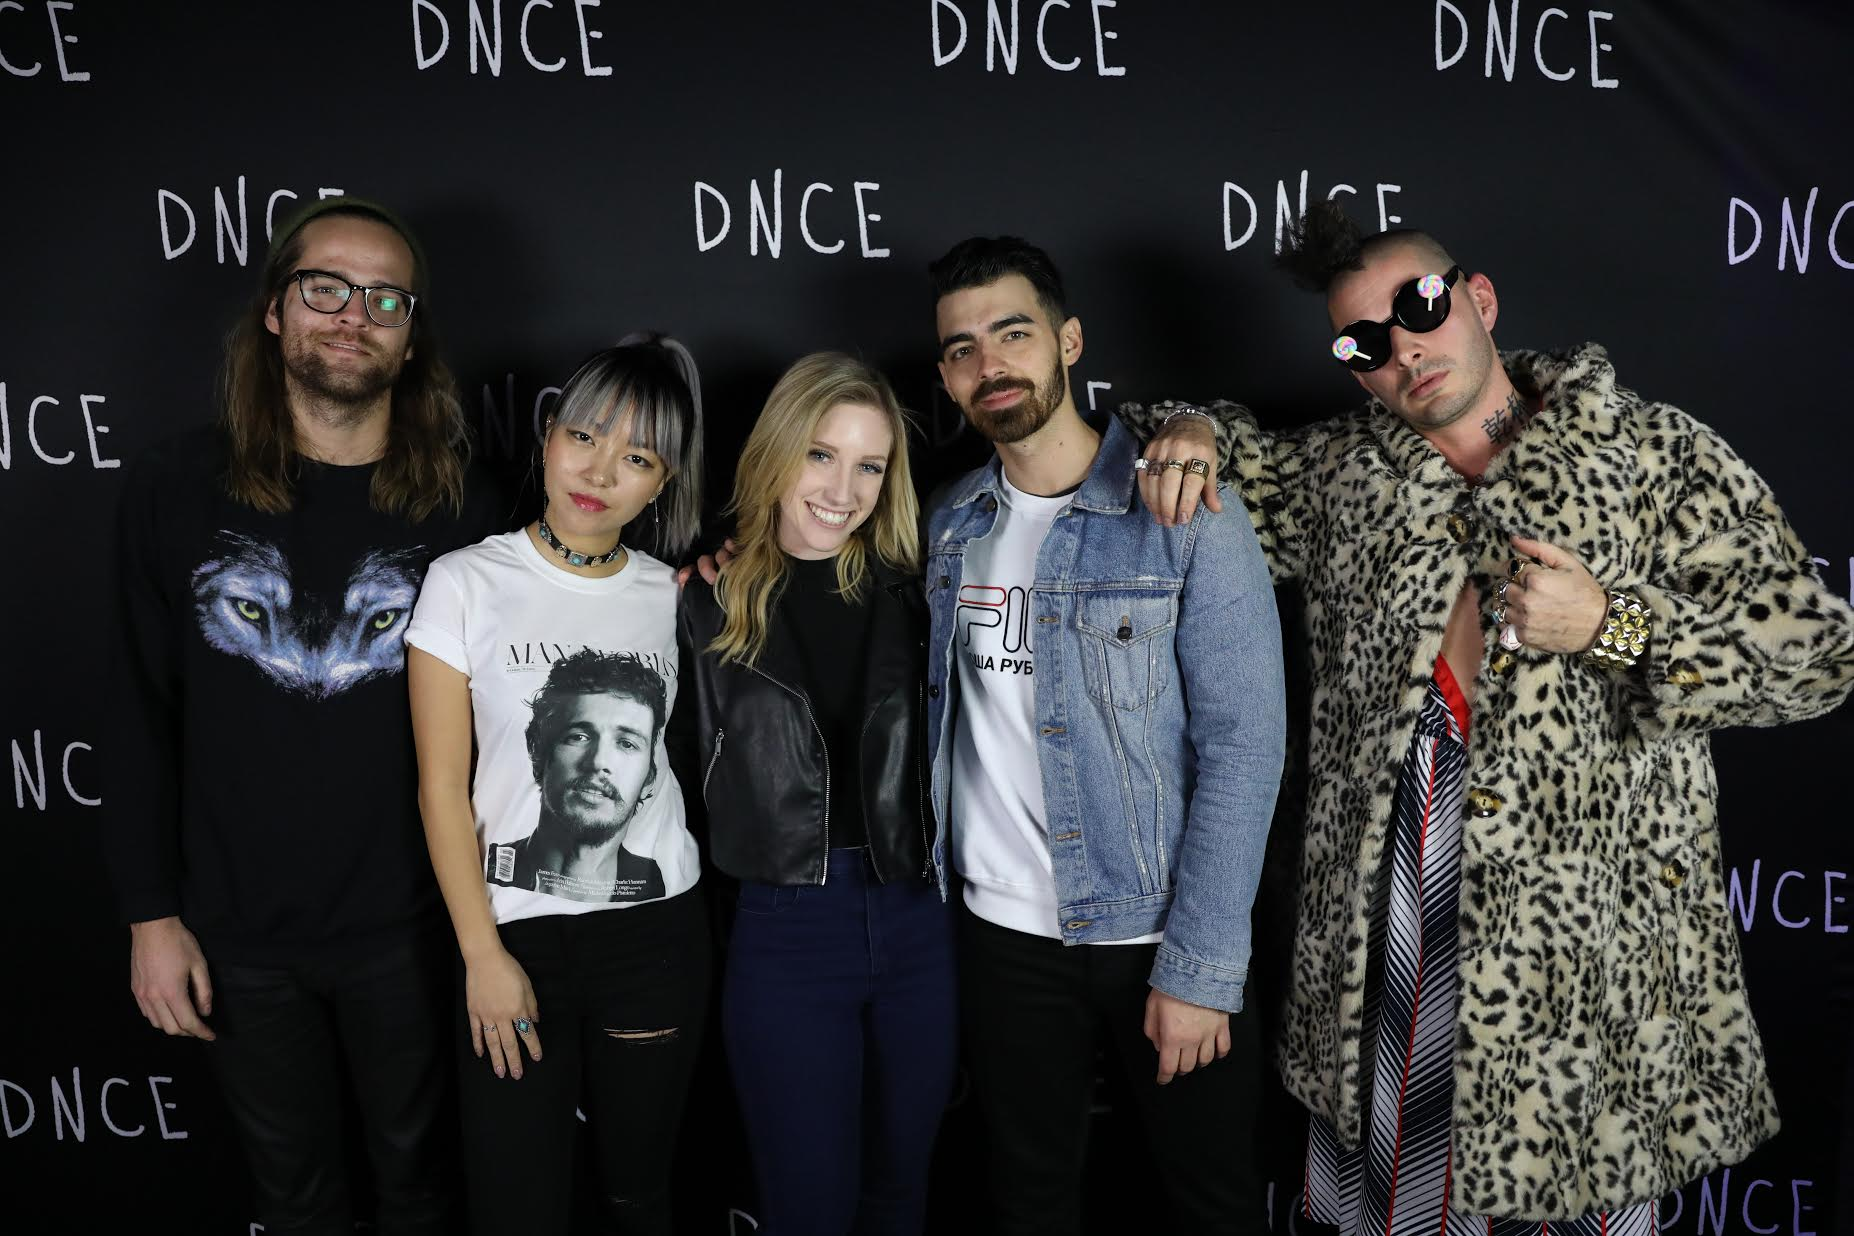 DNCE: Live at The Paramount